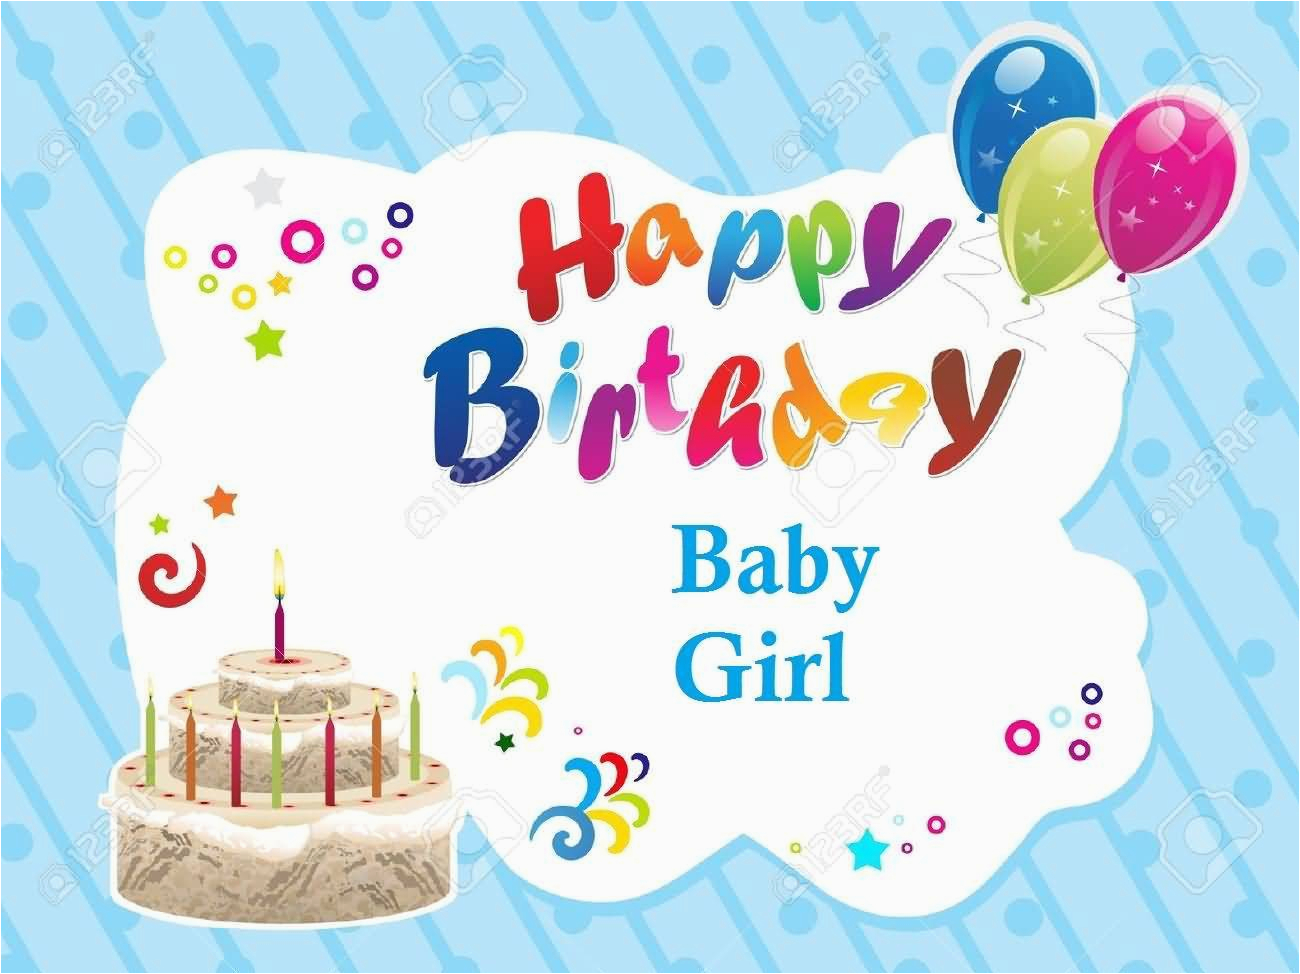 33 cute baby girl birthday wishes pictures